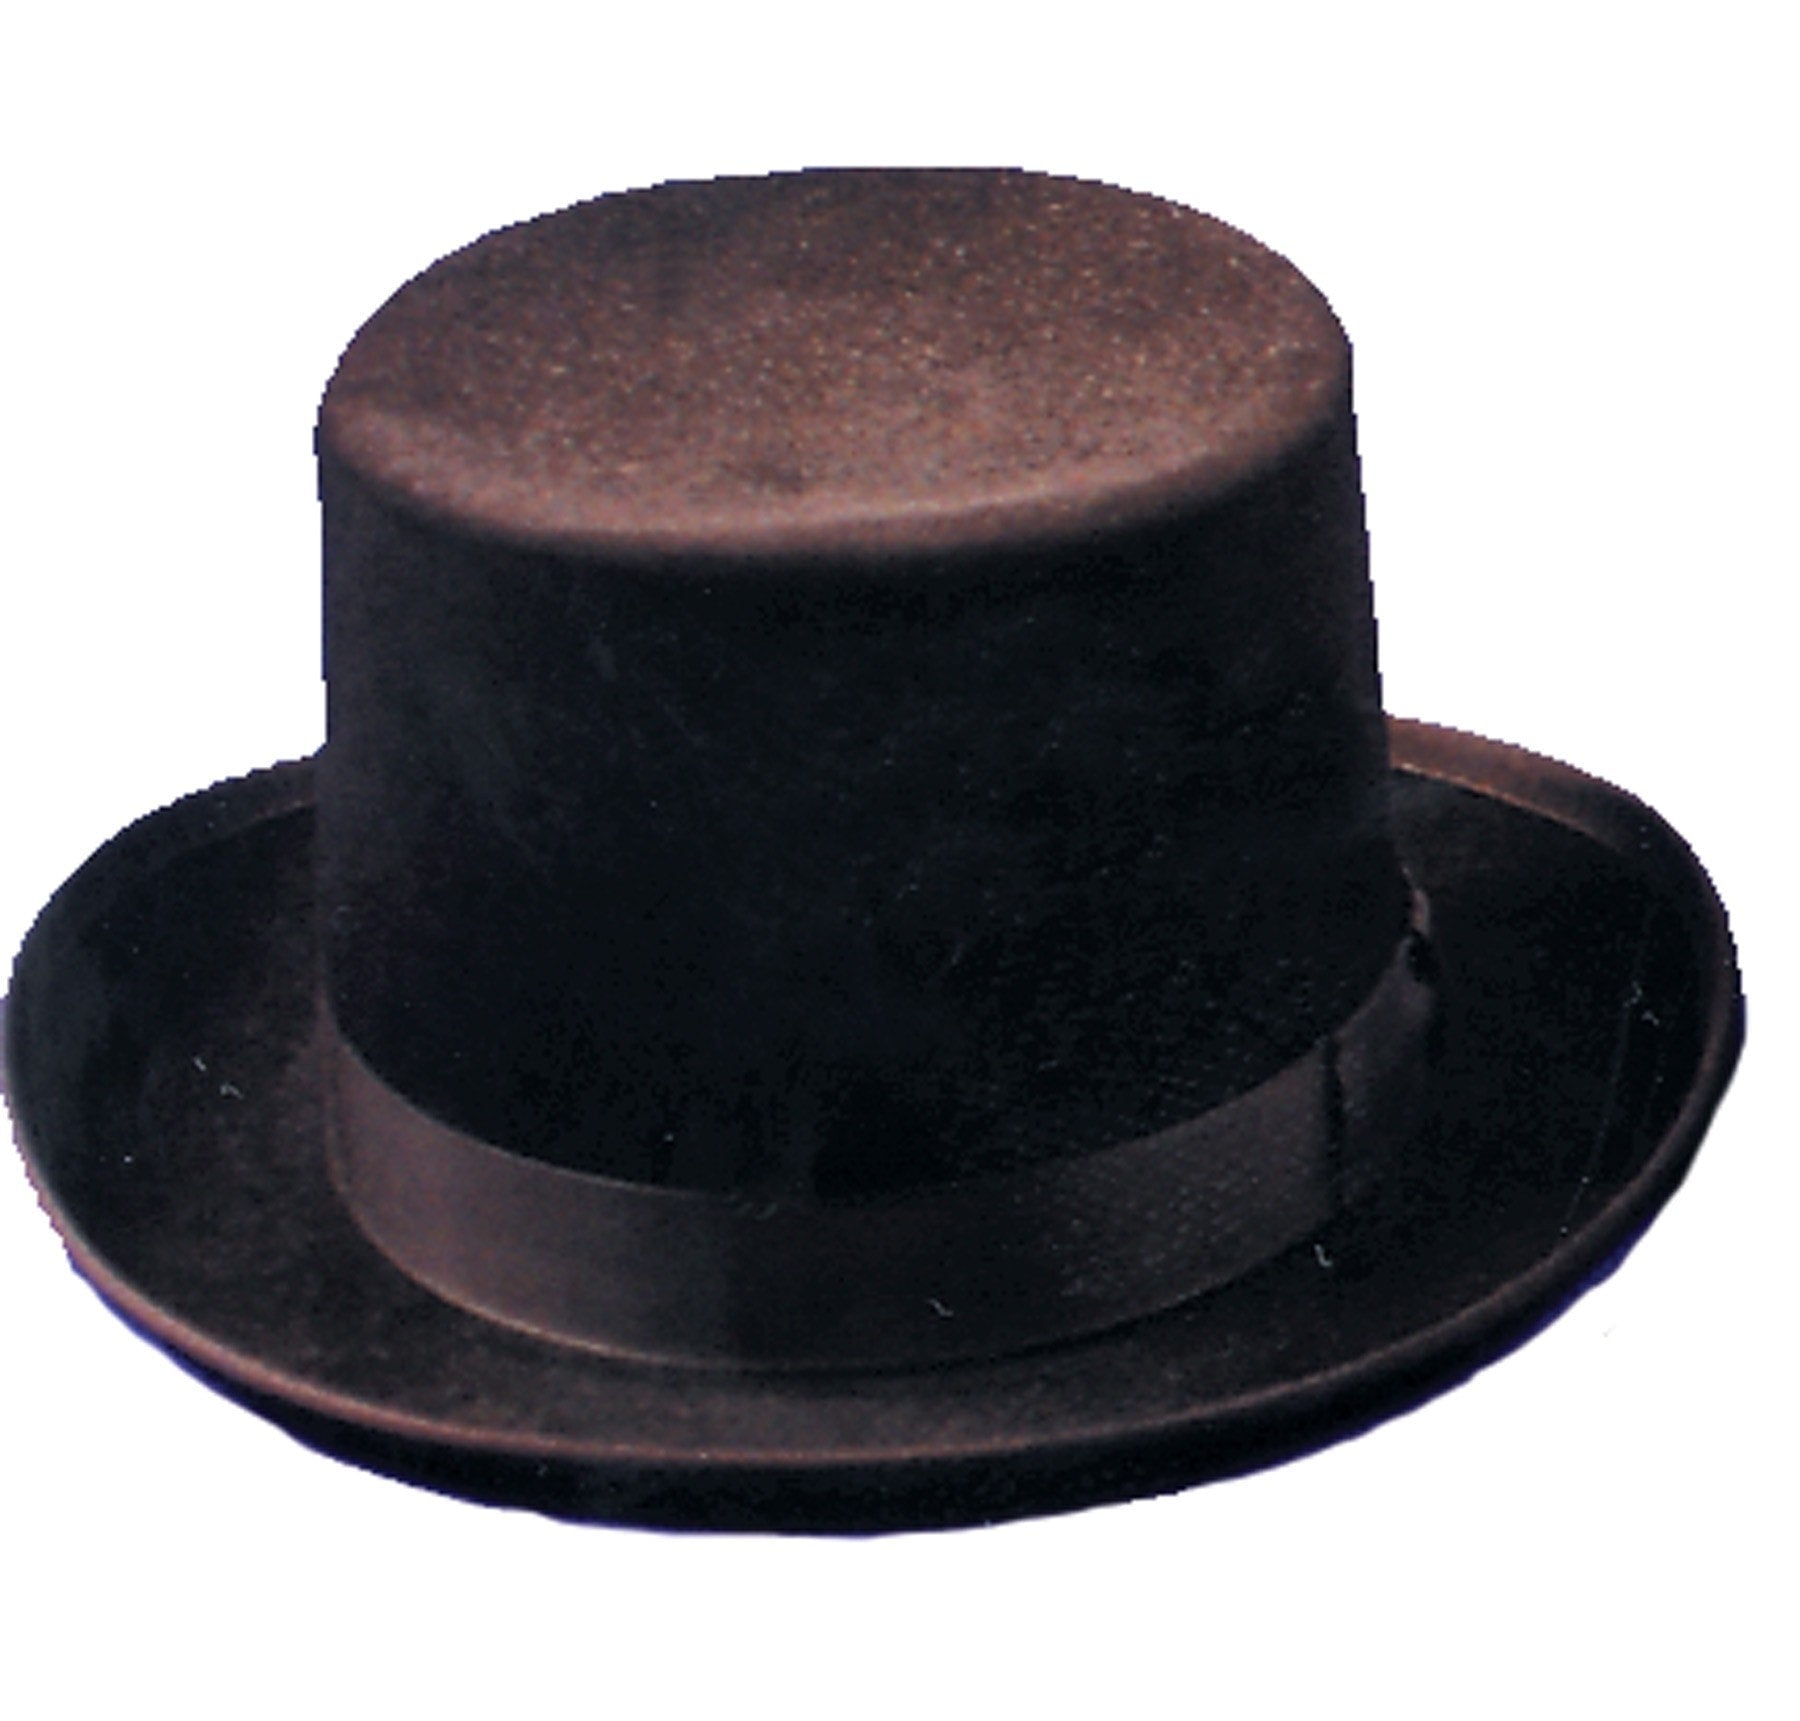 Morris Top Hat Felt Qual Black Lrg - MaxWigs